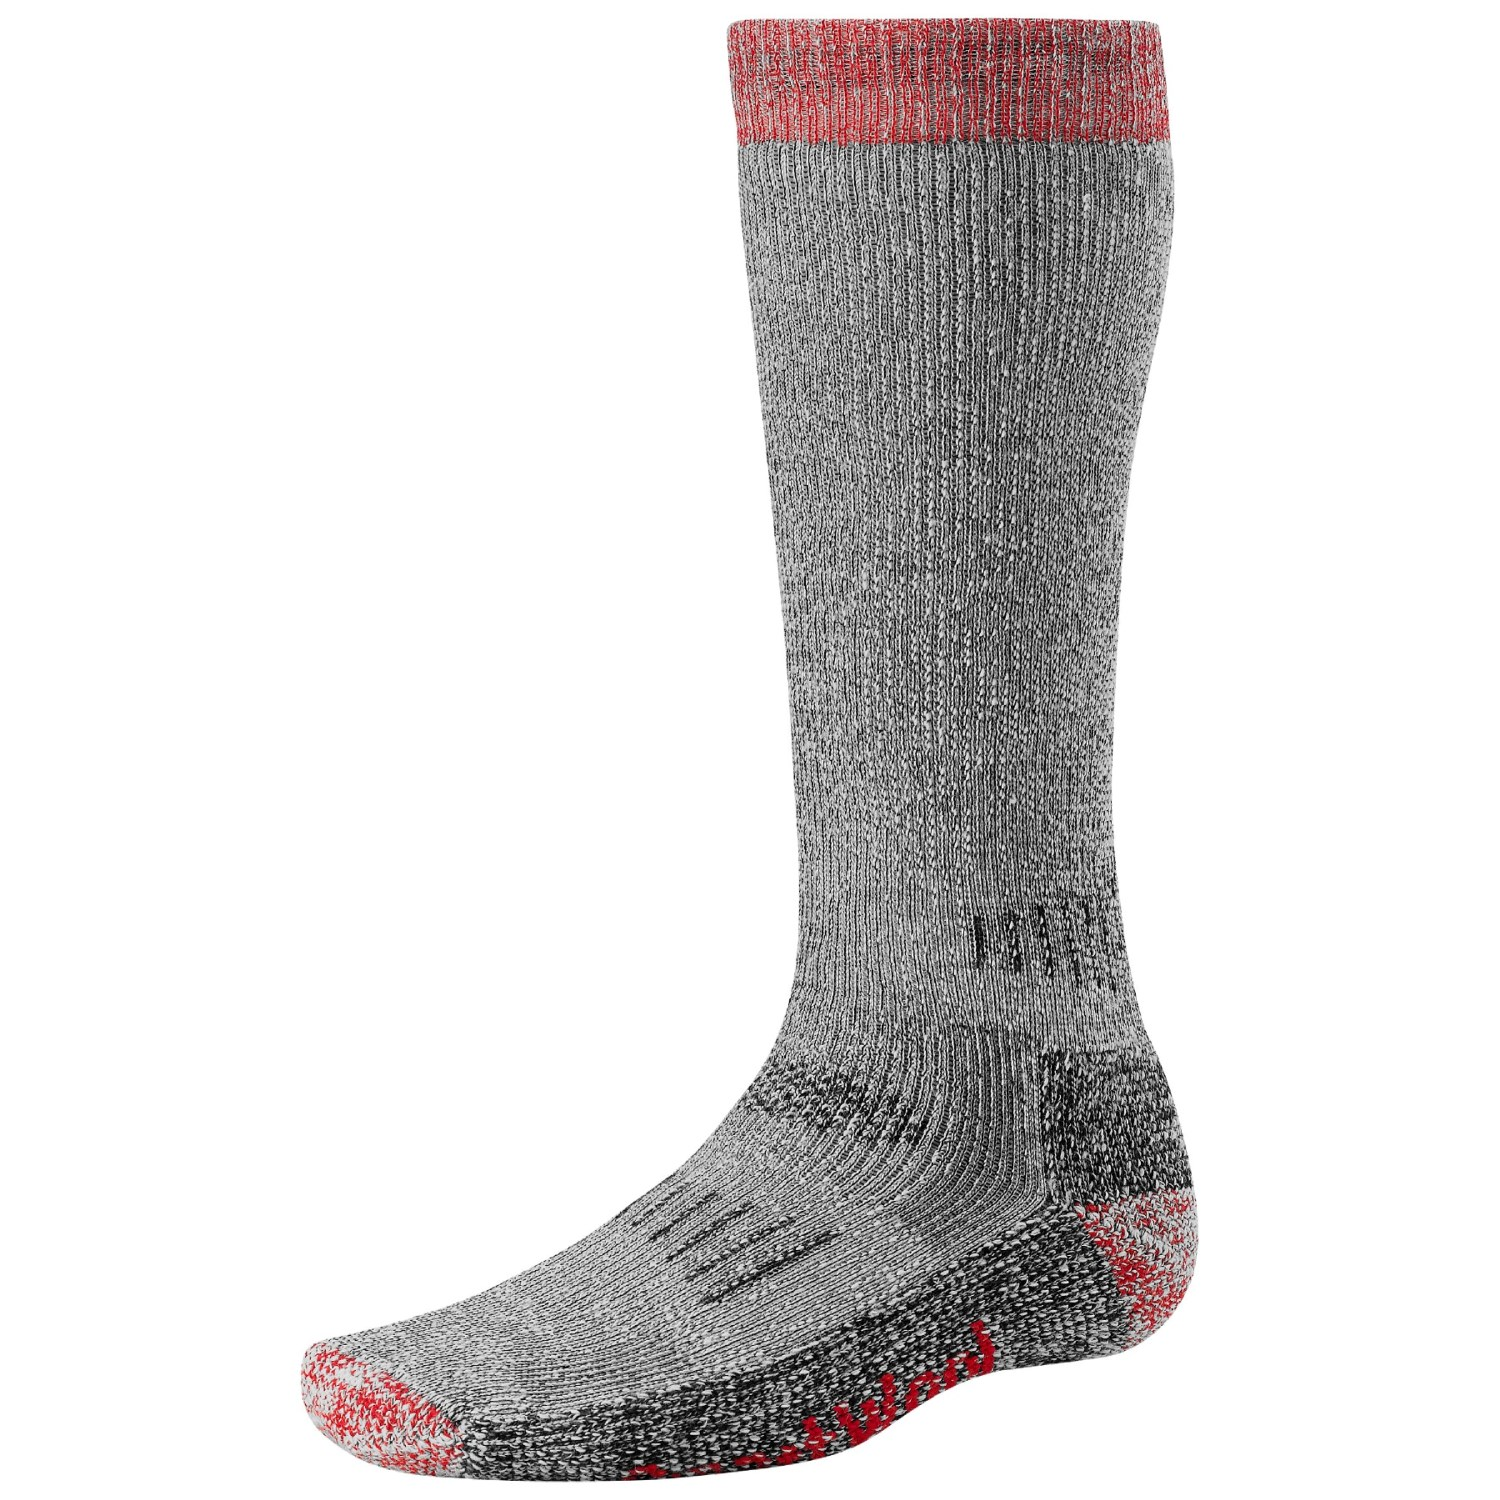 smartwool merino wool extra heavyweight hunting socks for men and women in grey red p 14175 02 1500 3